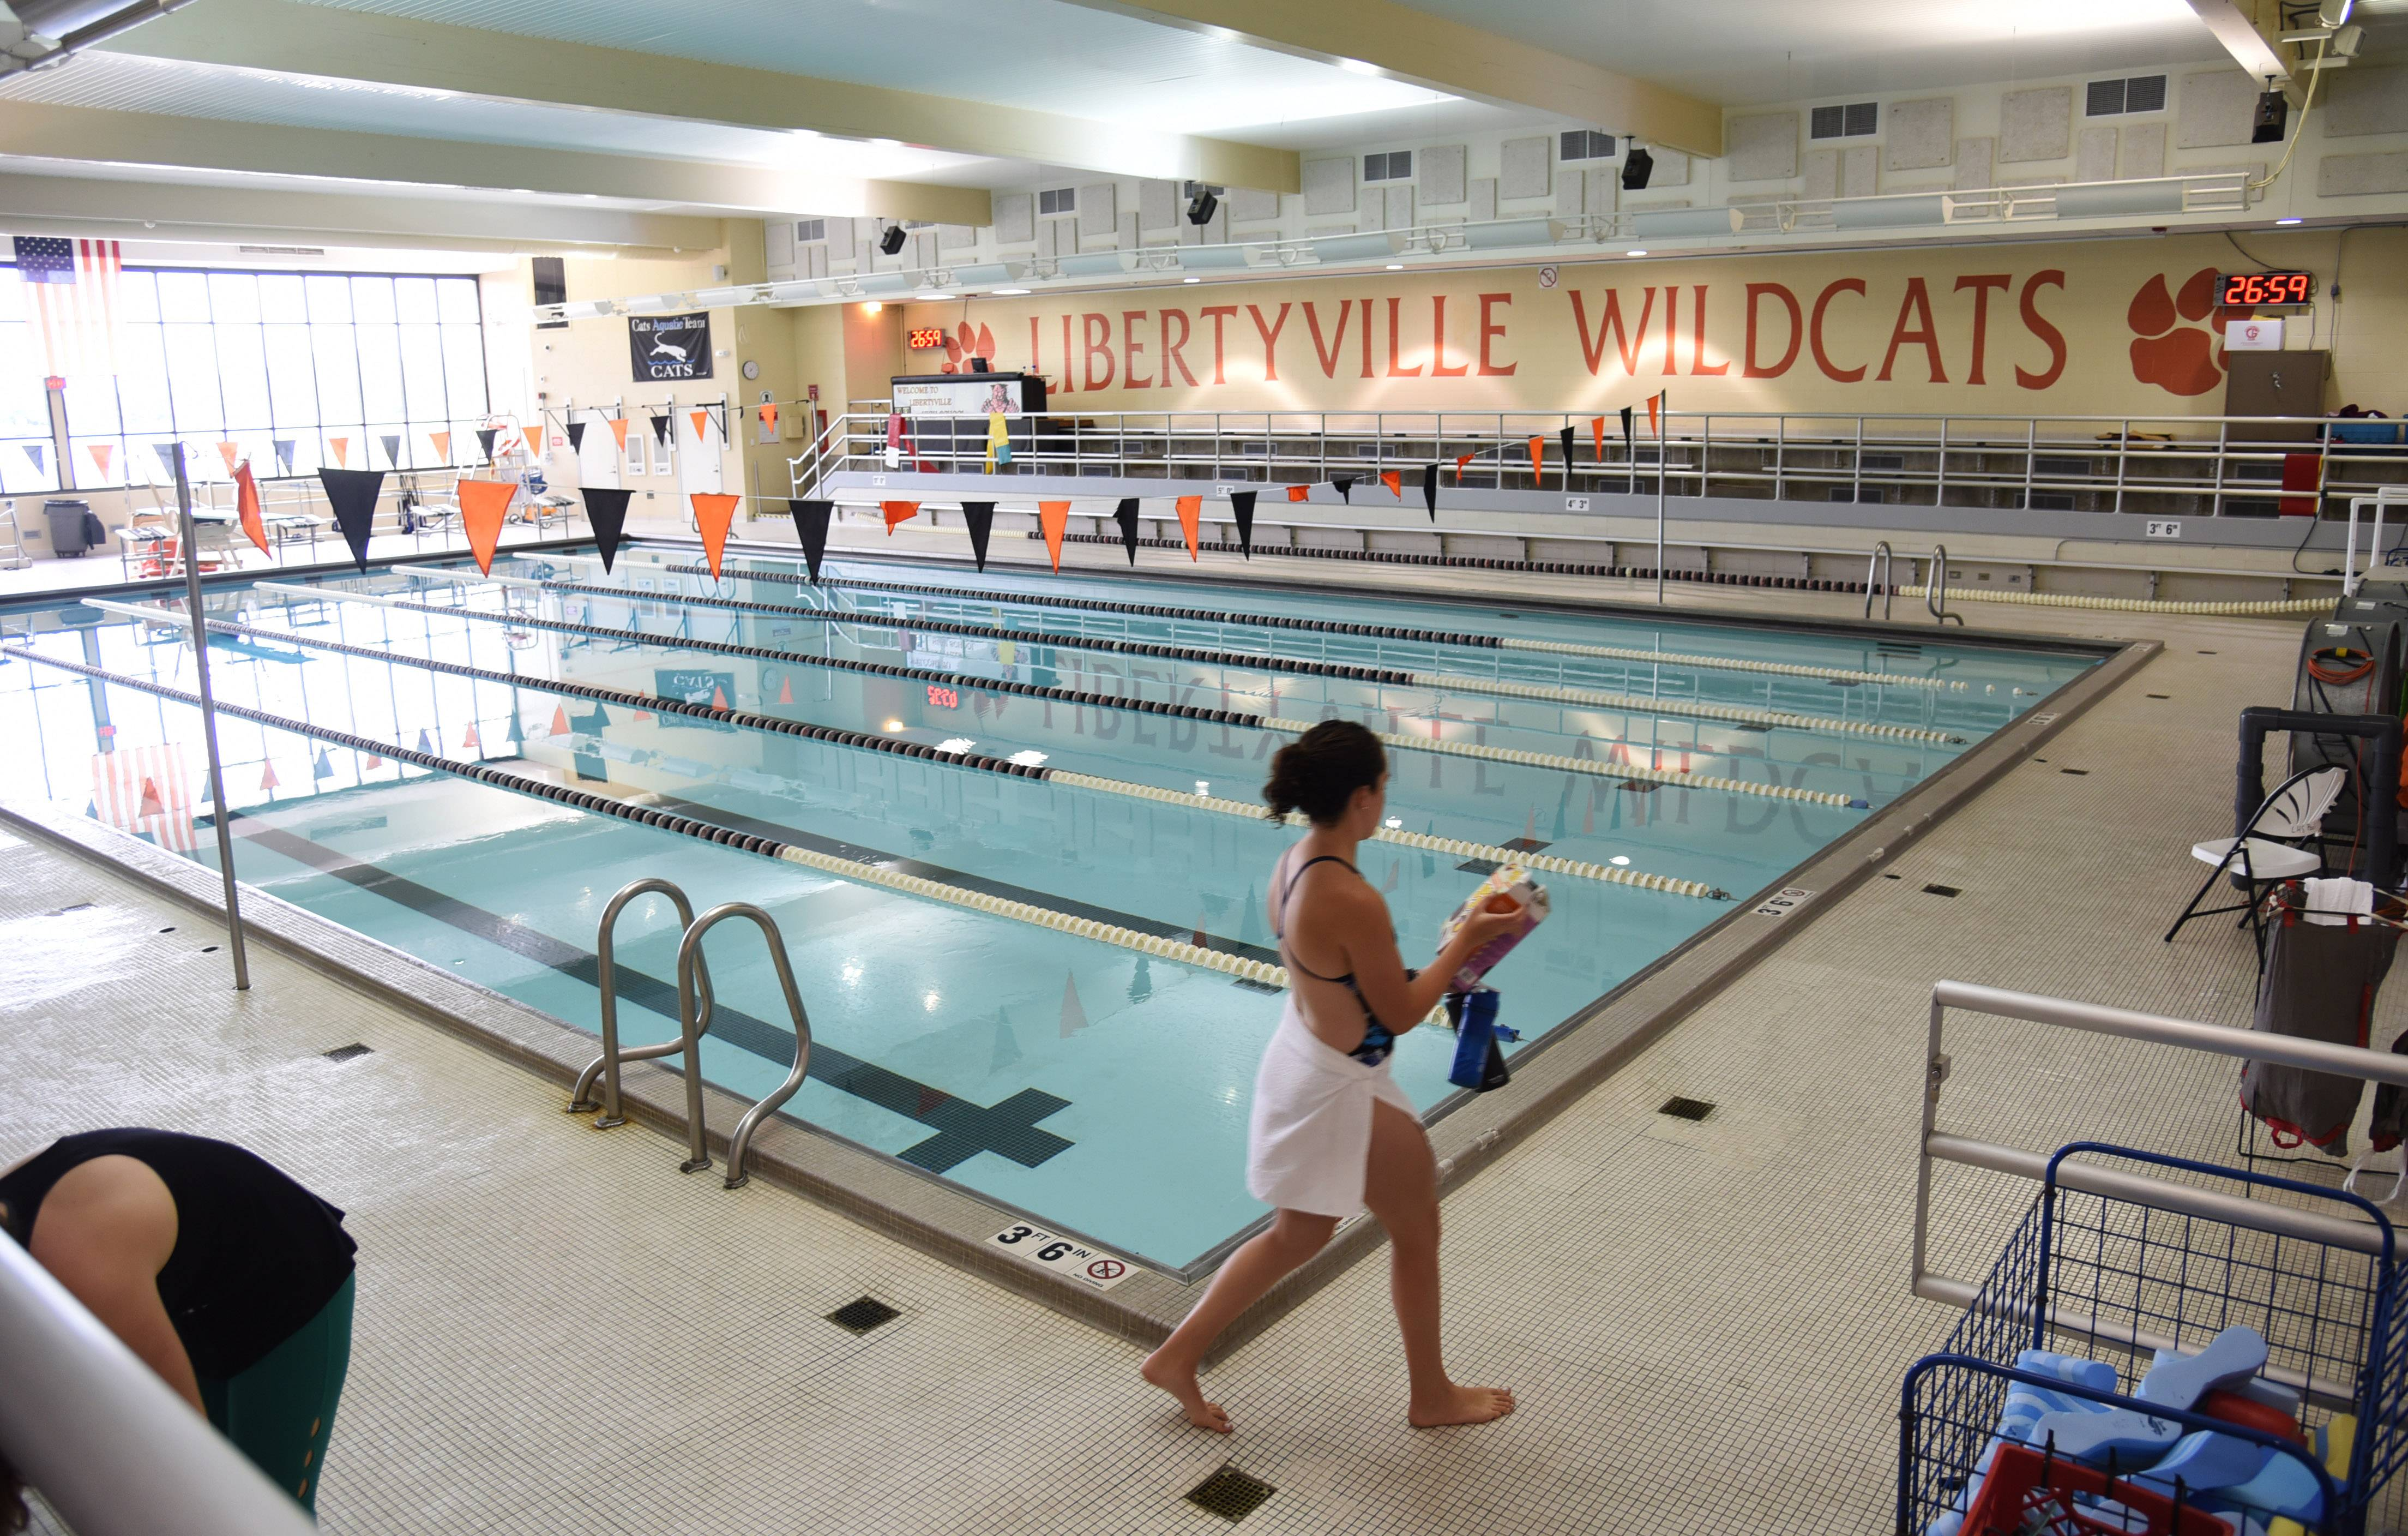 The current six-lane swimming pool at Libertyville High School will be used until an eight-lane pool is ready in 2019.